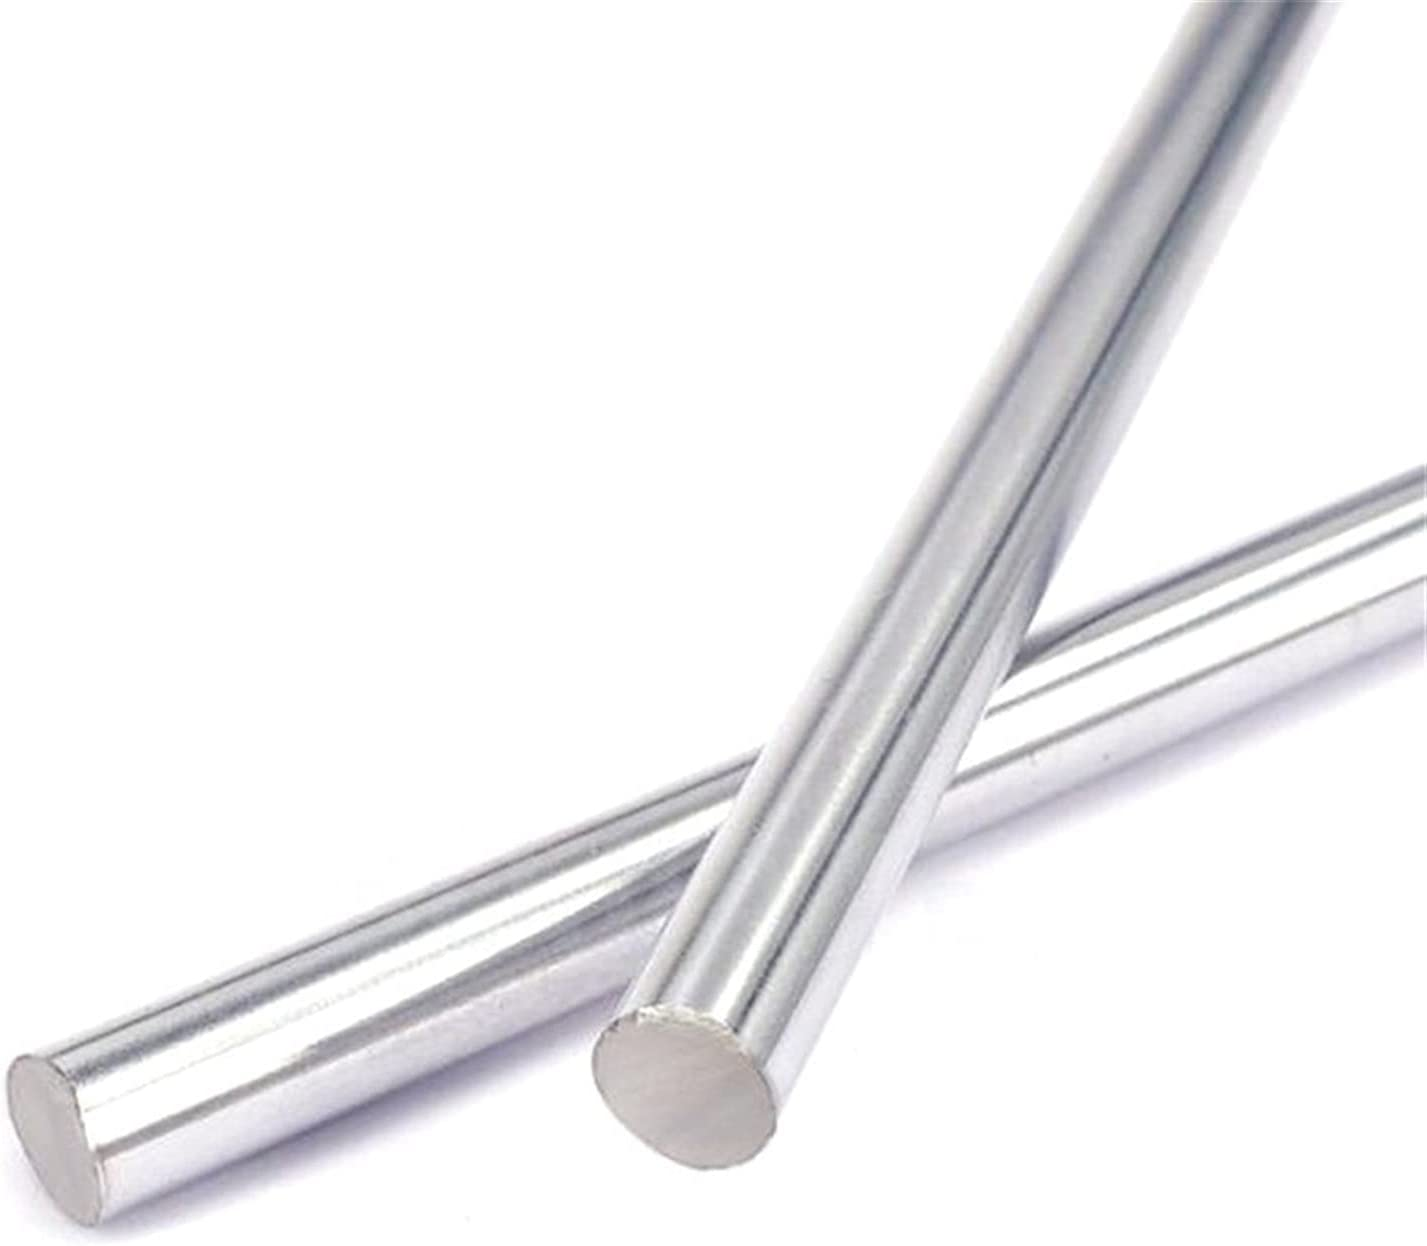 MDD OD 16mm Cylinder Beauty products Liner Rail Linear Credence Shaft Axis Optical Beari